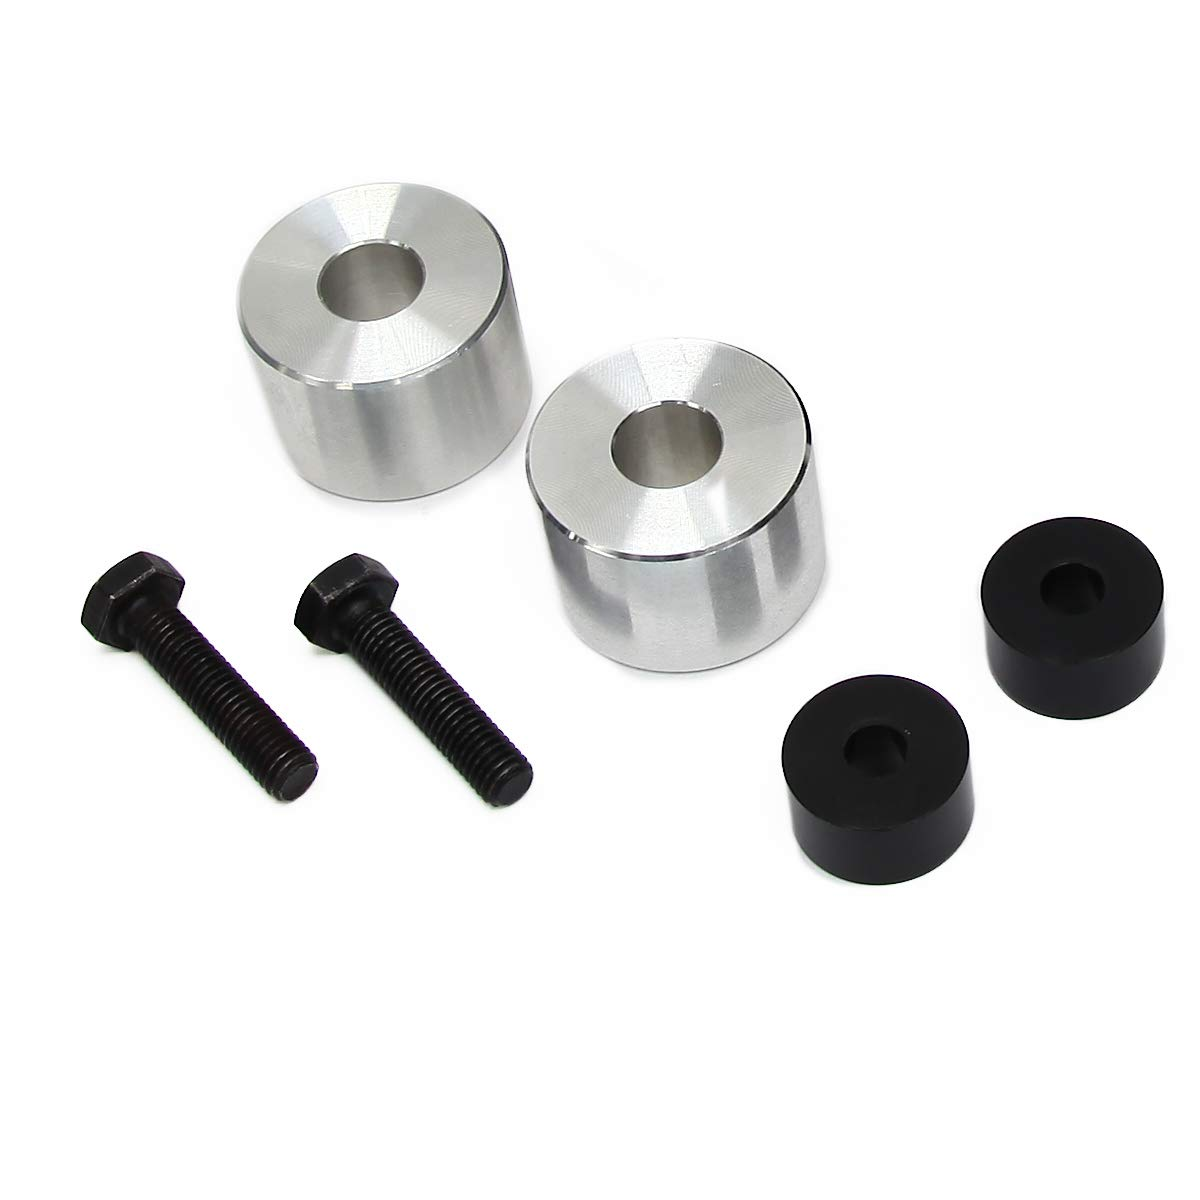 Tundra Tacoma and Sequoia Differential Drop Kit Including Bolts 4WD